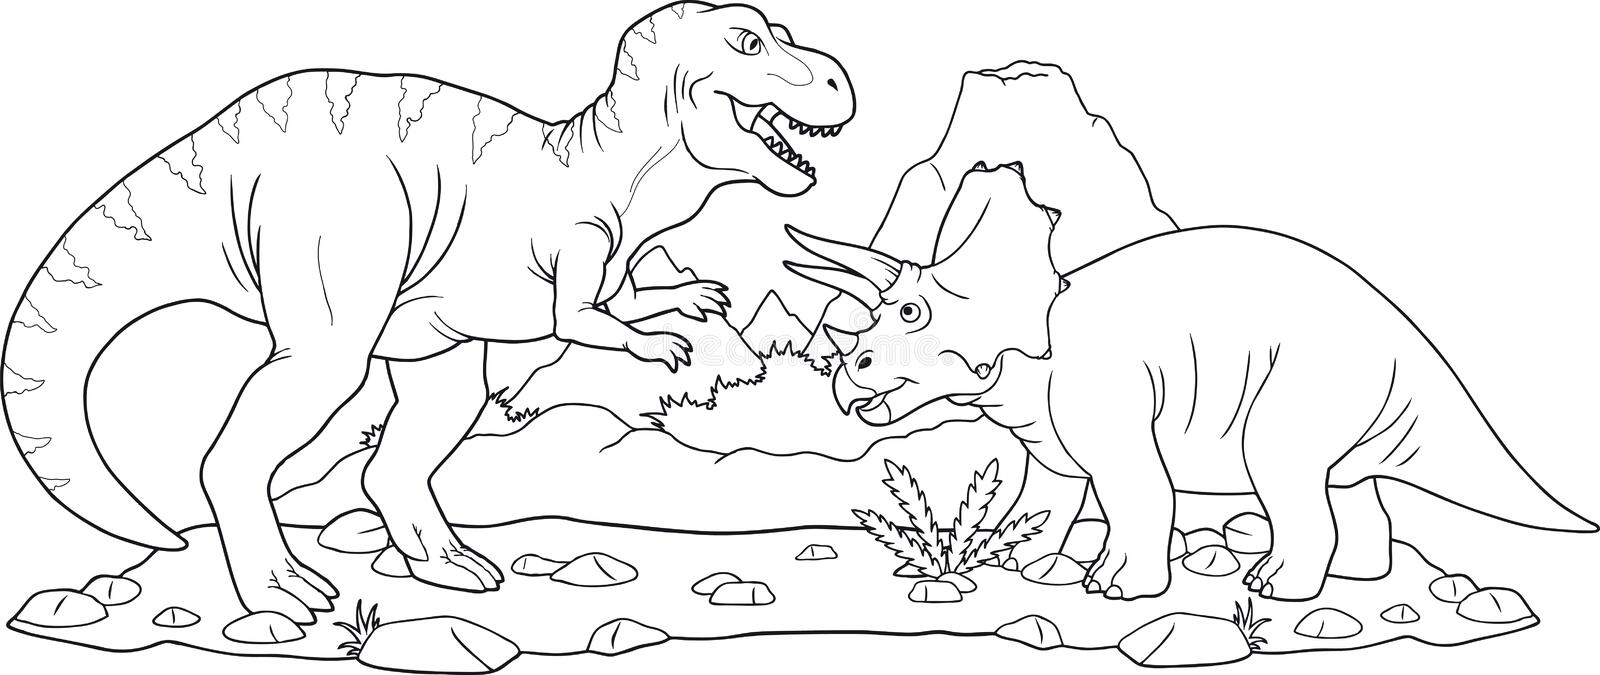 Battle dinosaurs. Dinosaurs are preparing to fight royalty free illustration